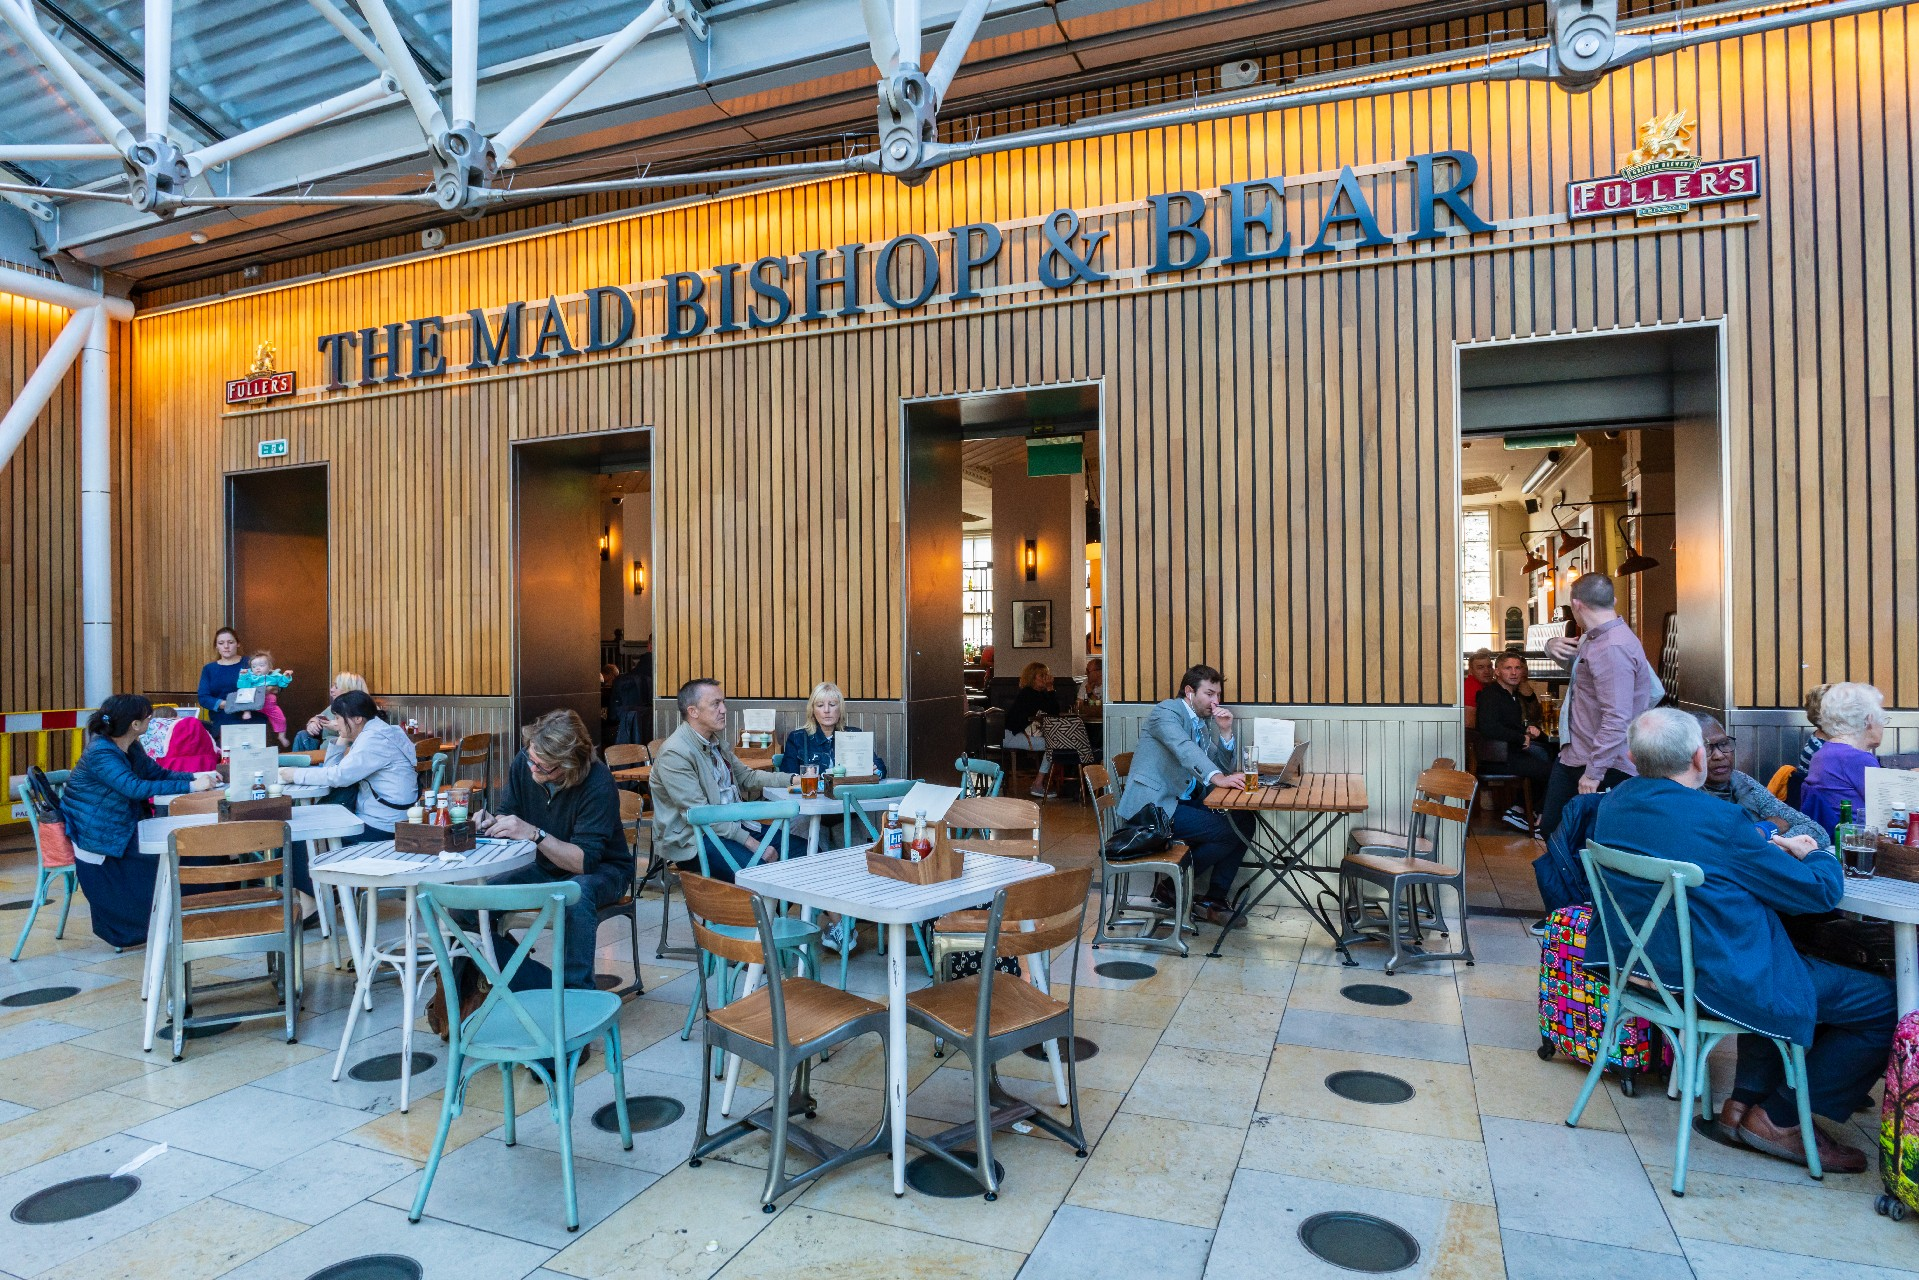 Pub and Restaurant in Paddington Station, Mad Bishop and Bear